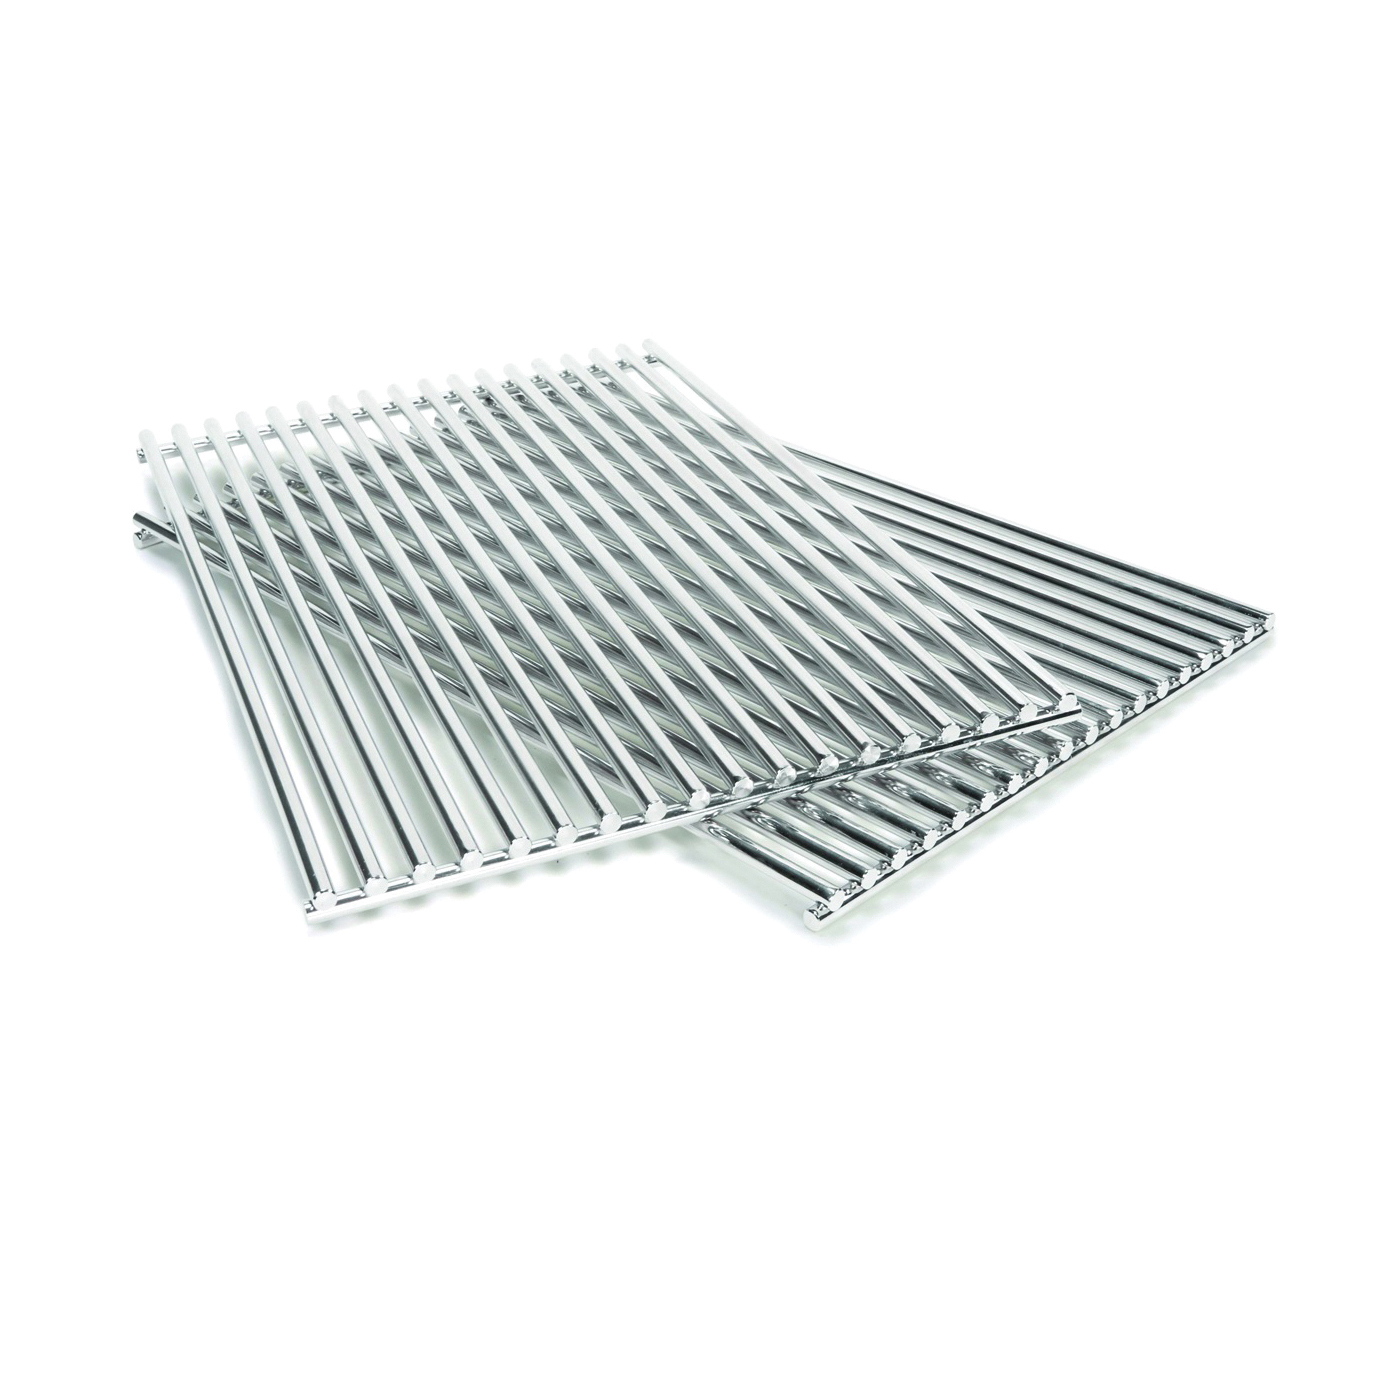 Picture of Onward 17528 Grid Grill, 8 Gauge, Stainless Steel, Silver